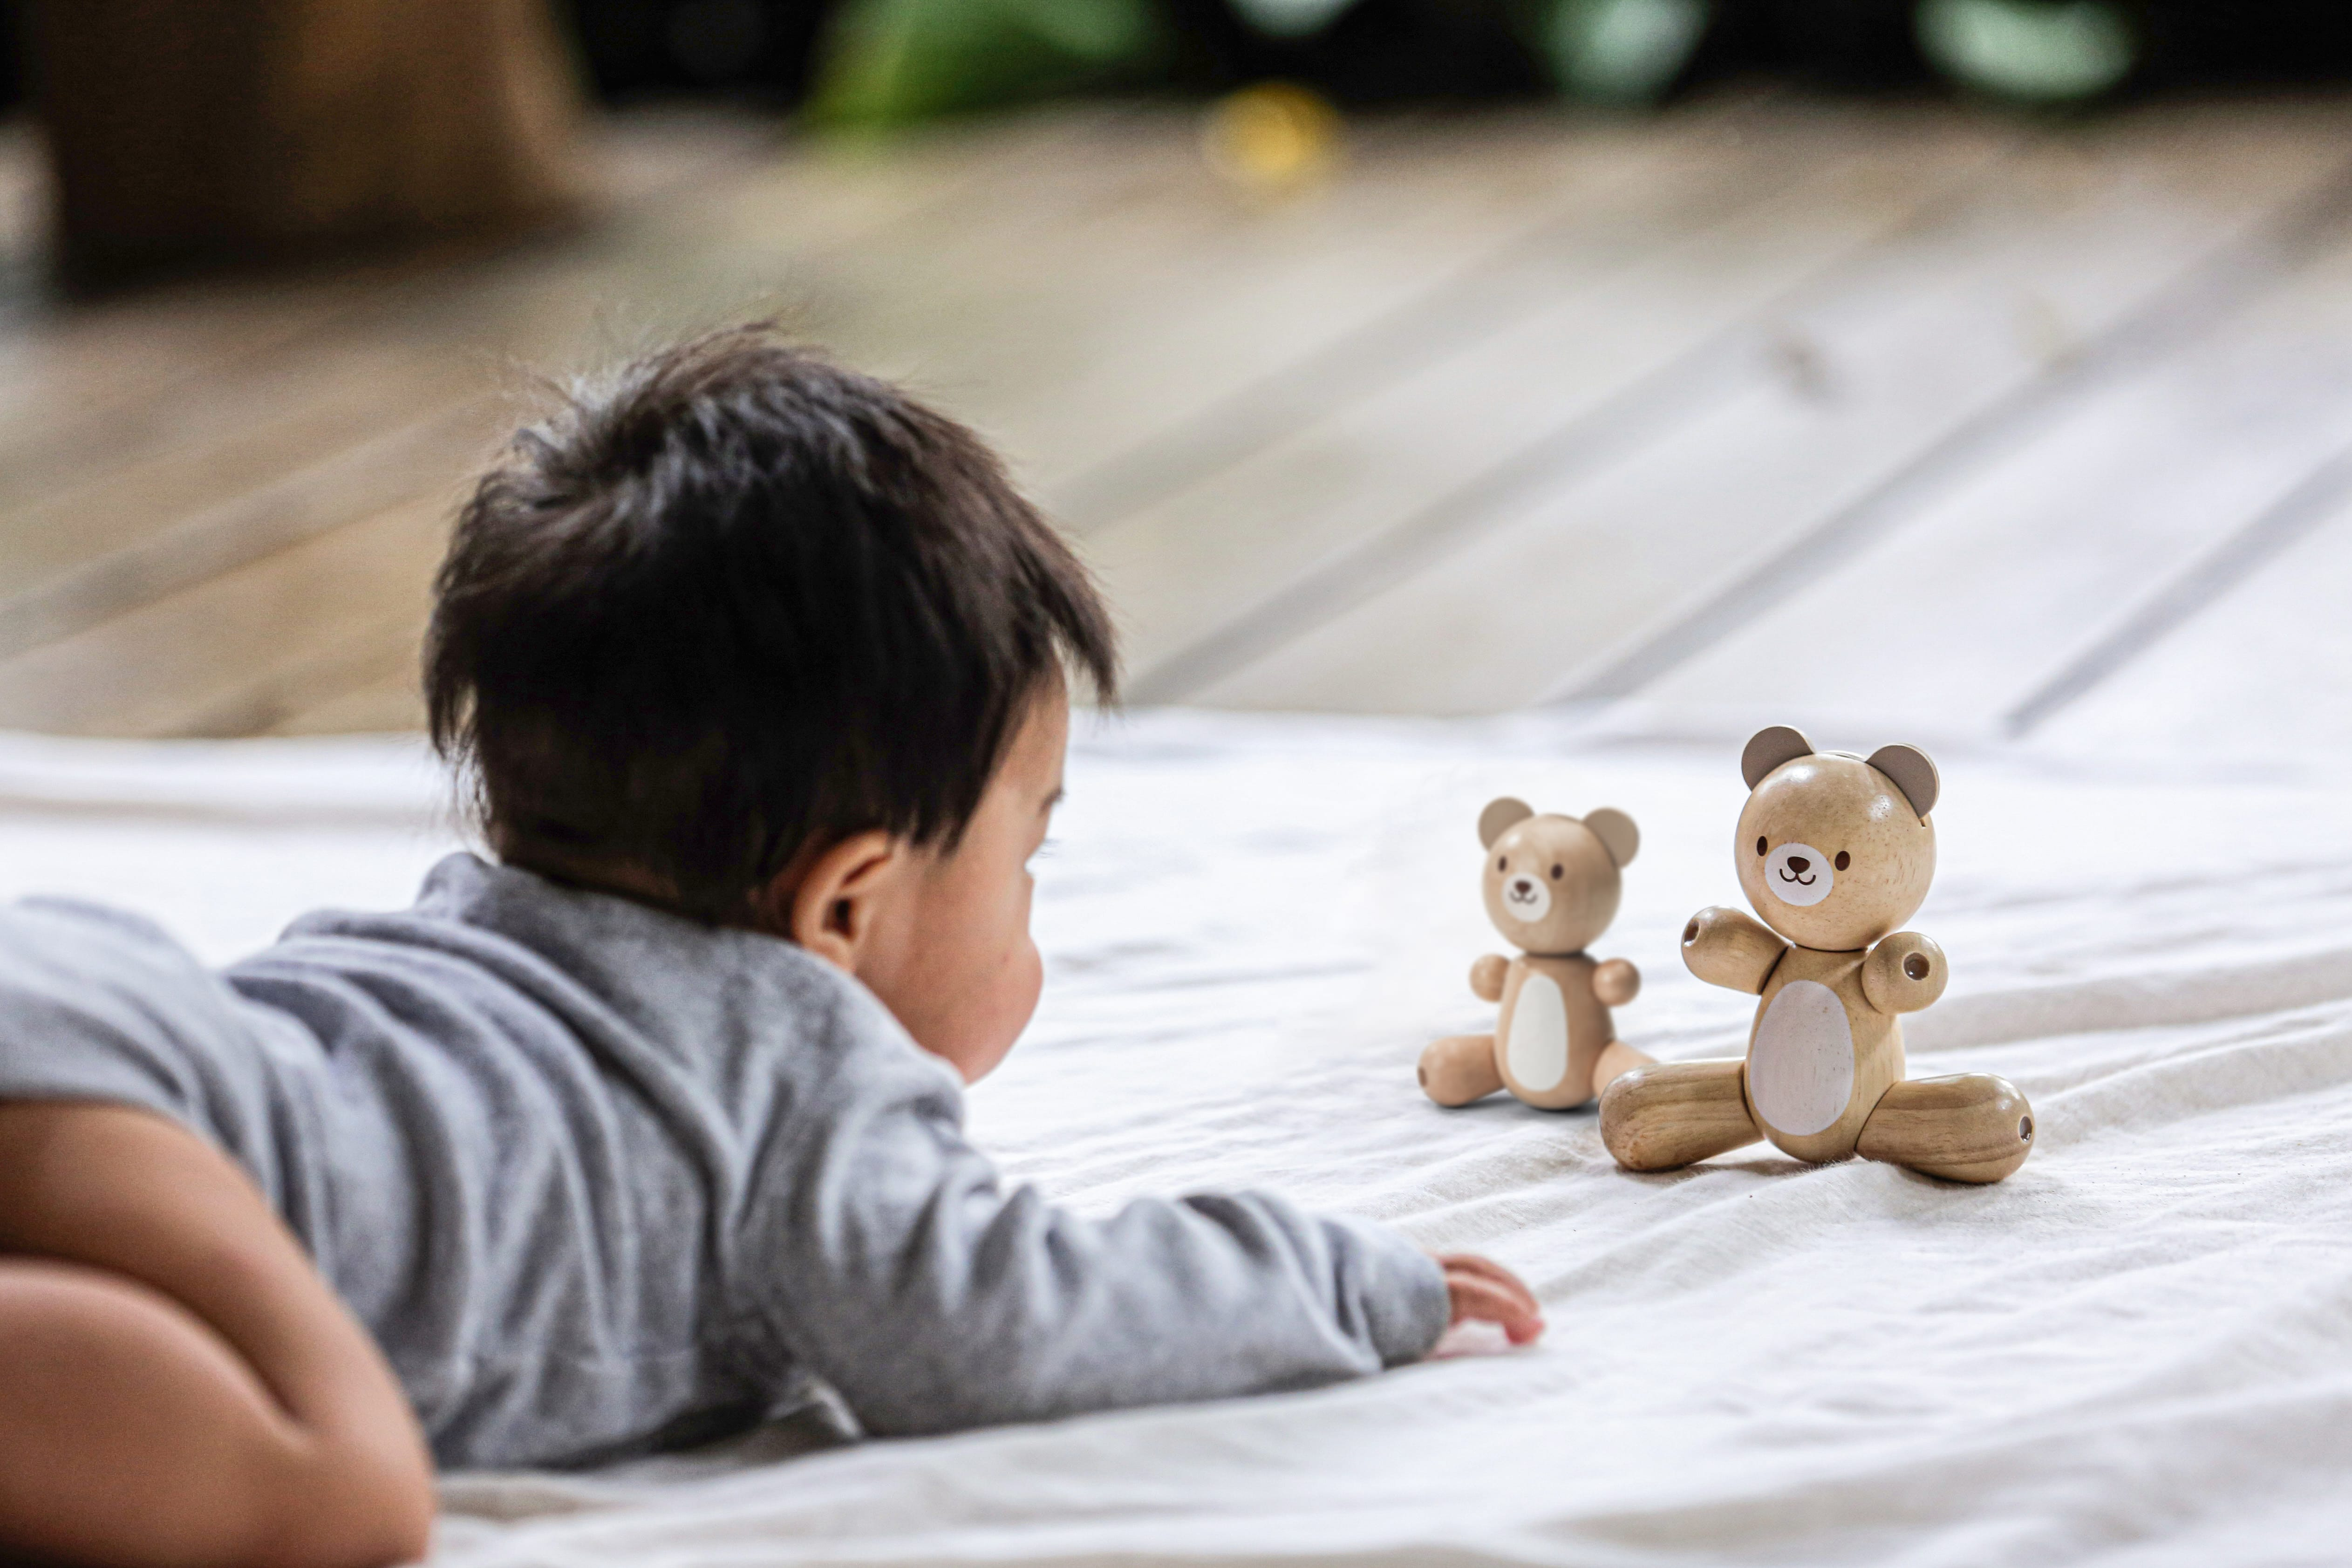 5264_PlanToys_BEAR_and_LITTLE_BEAR_Babies_Emotion_Coordination_Tactile_Language_and_Communications_Imagination_Social_12m_Wooden_toys_Education_toys_Safety_Toys_Non-toxic_0.jpg